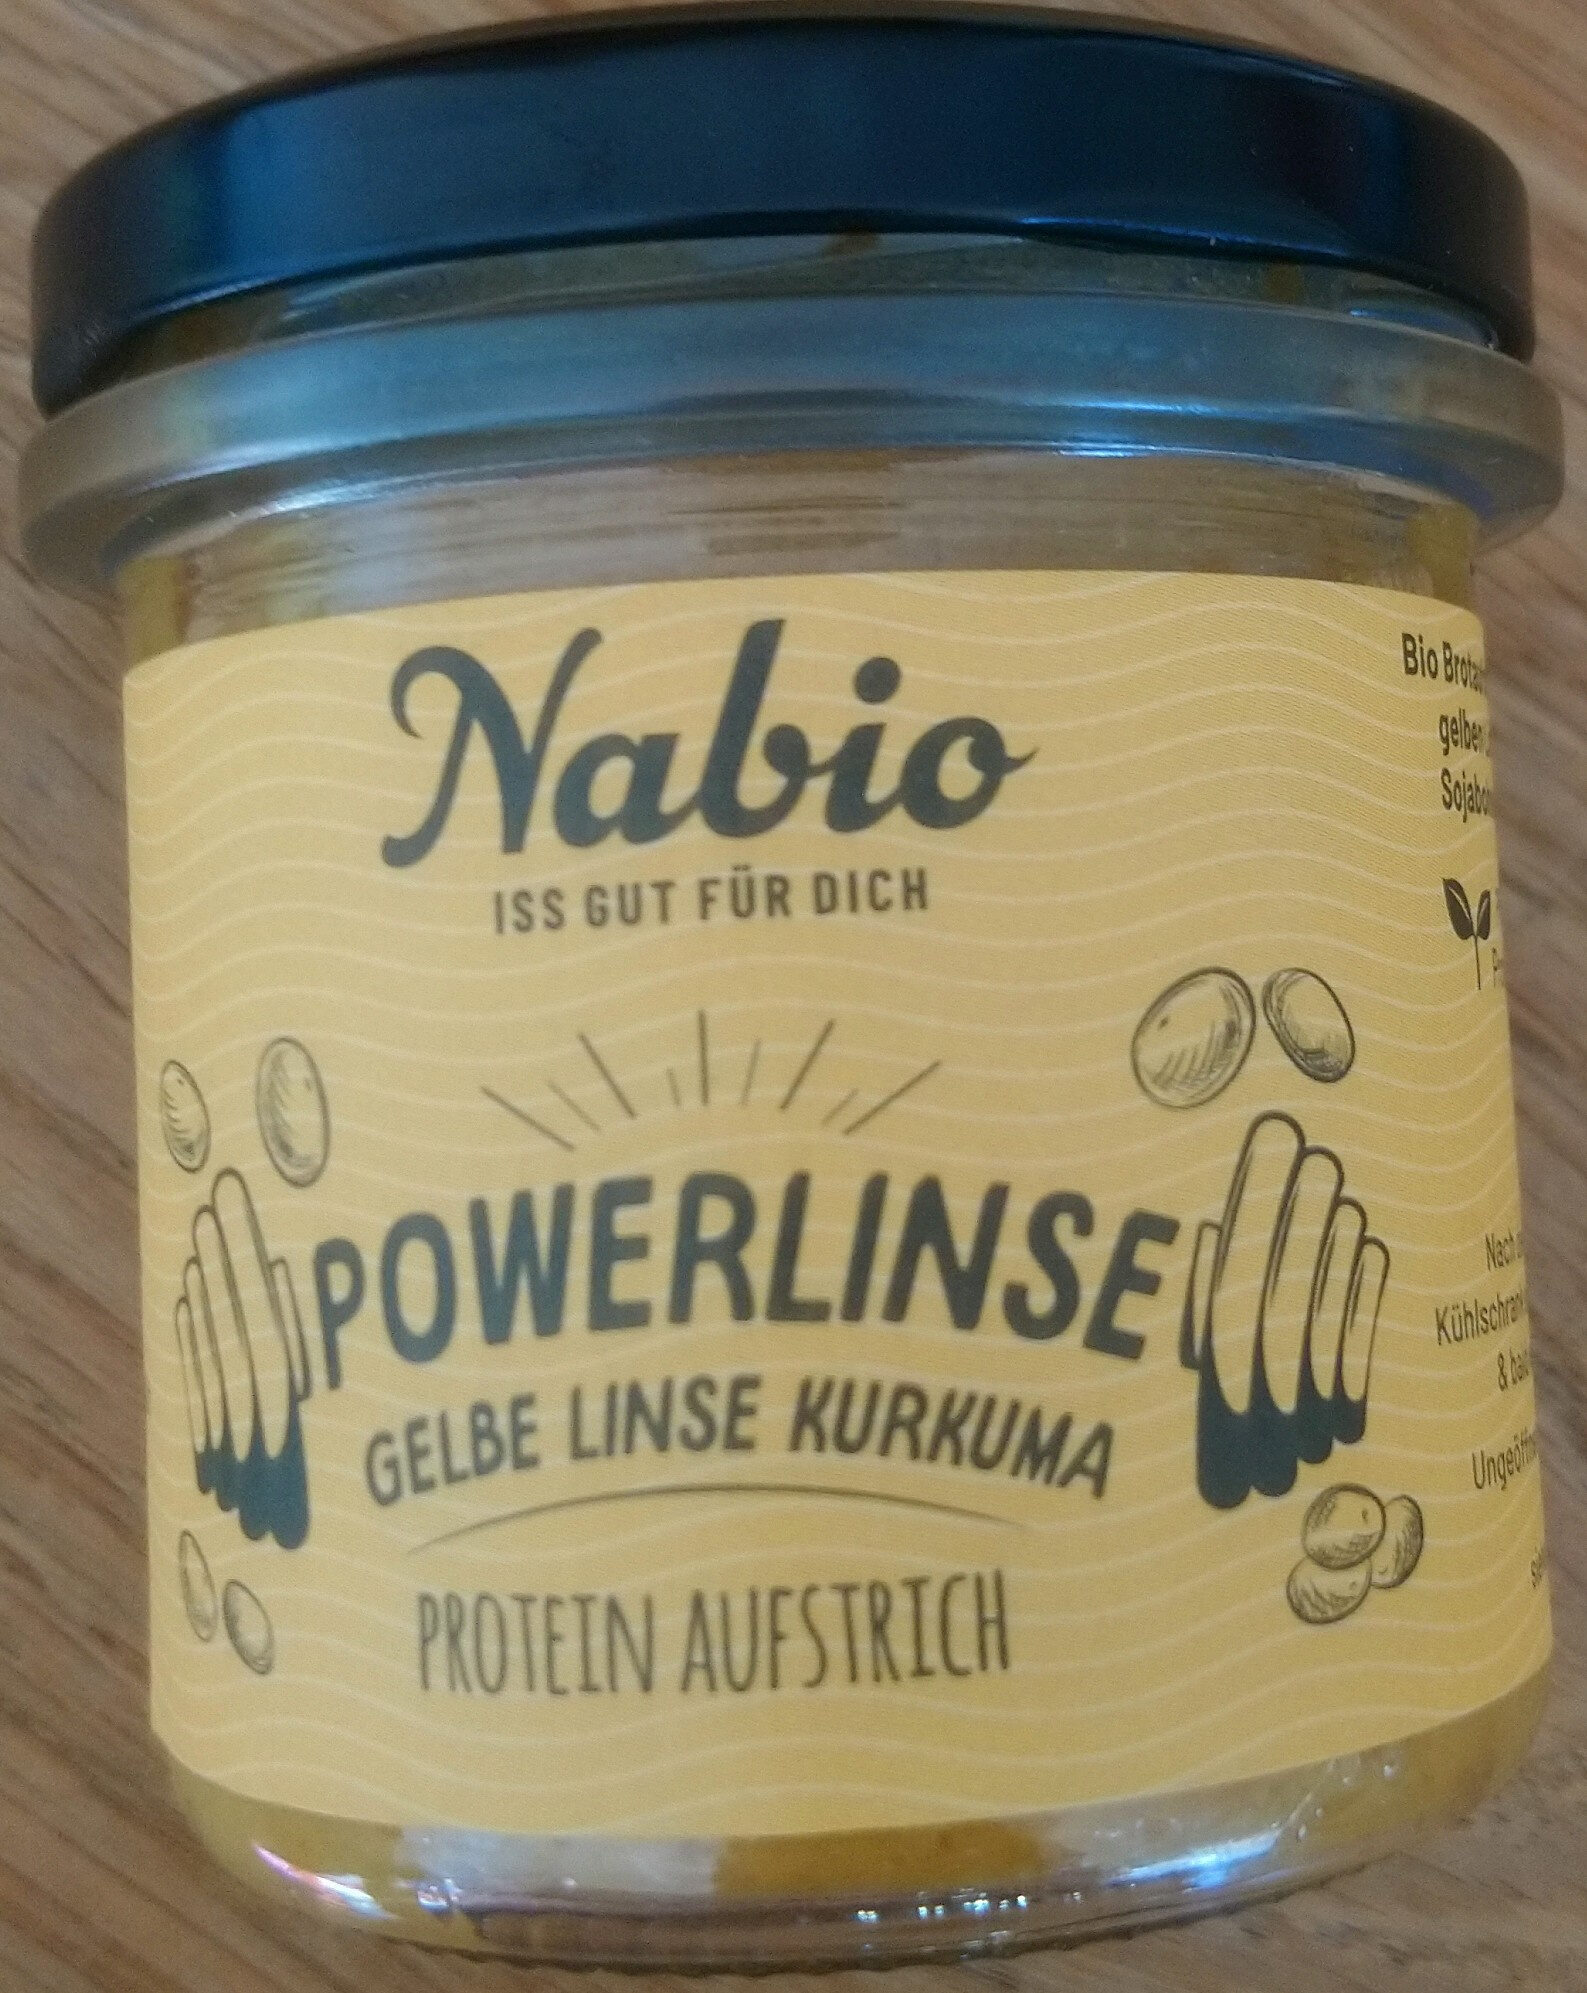 Powerlinse Protein Aufstrich - Product - de